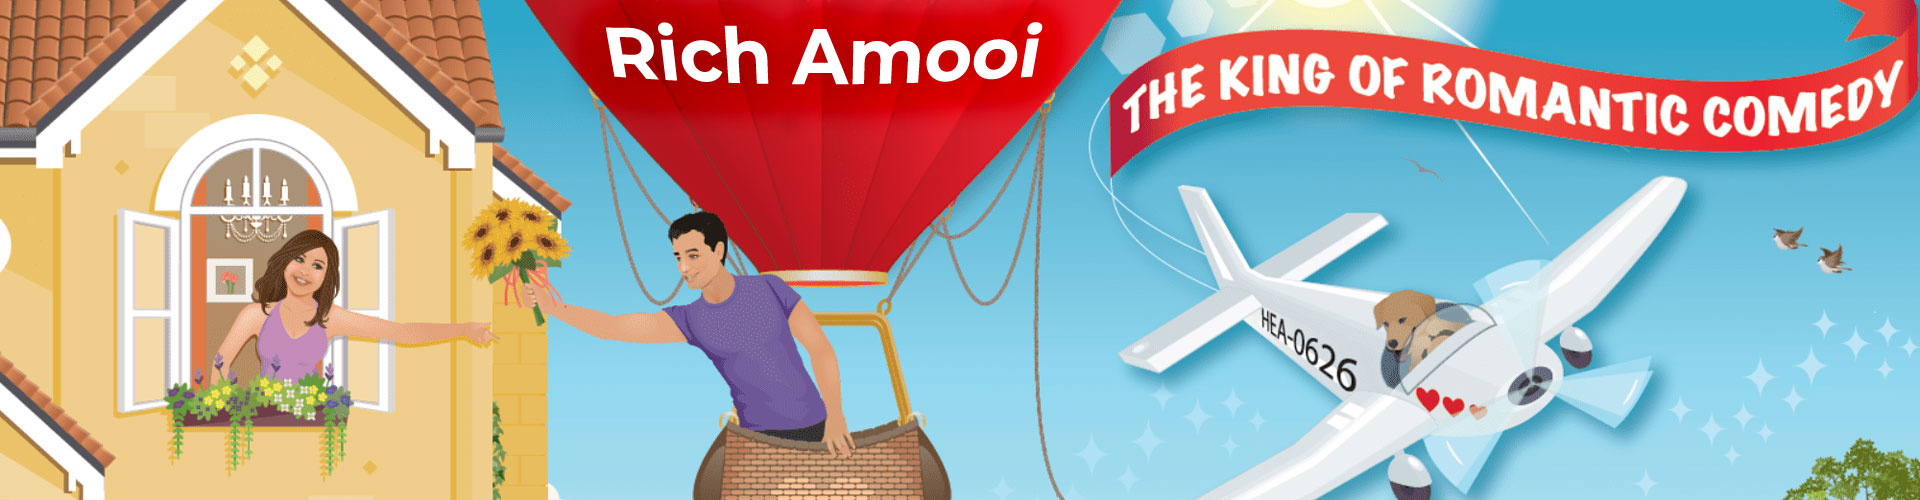 Rich Amooi - The King of Romantic Comedy